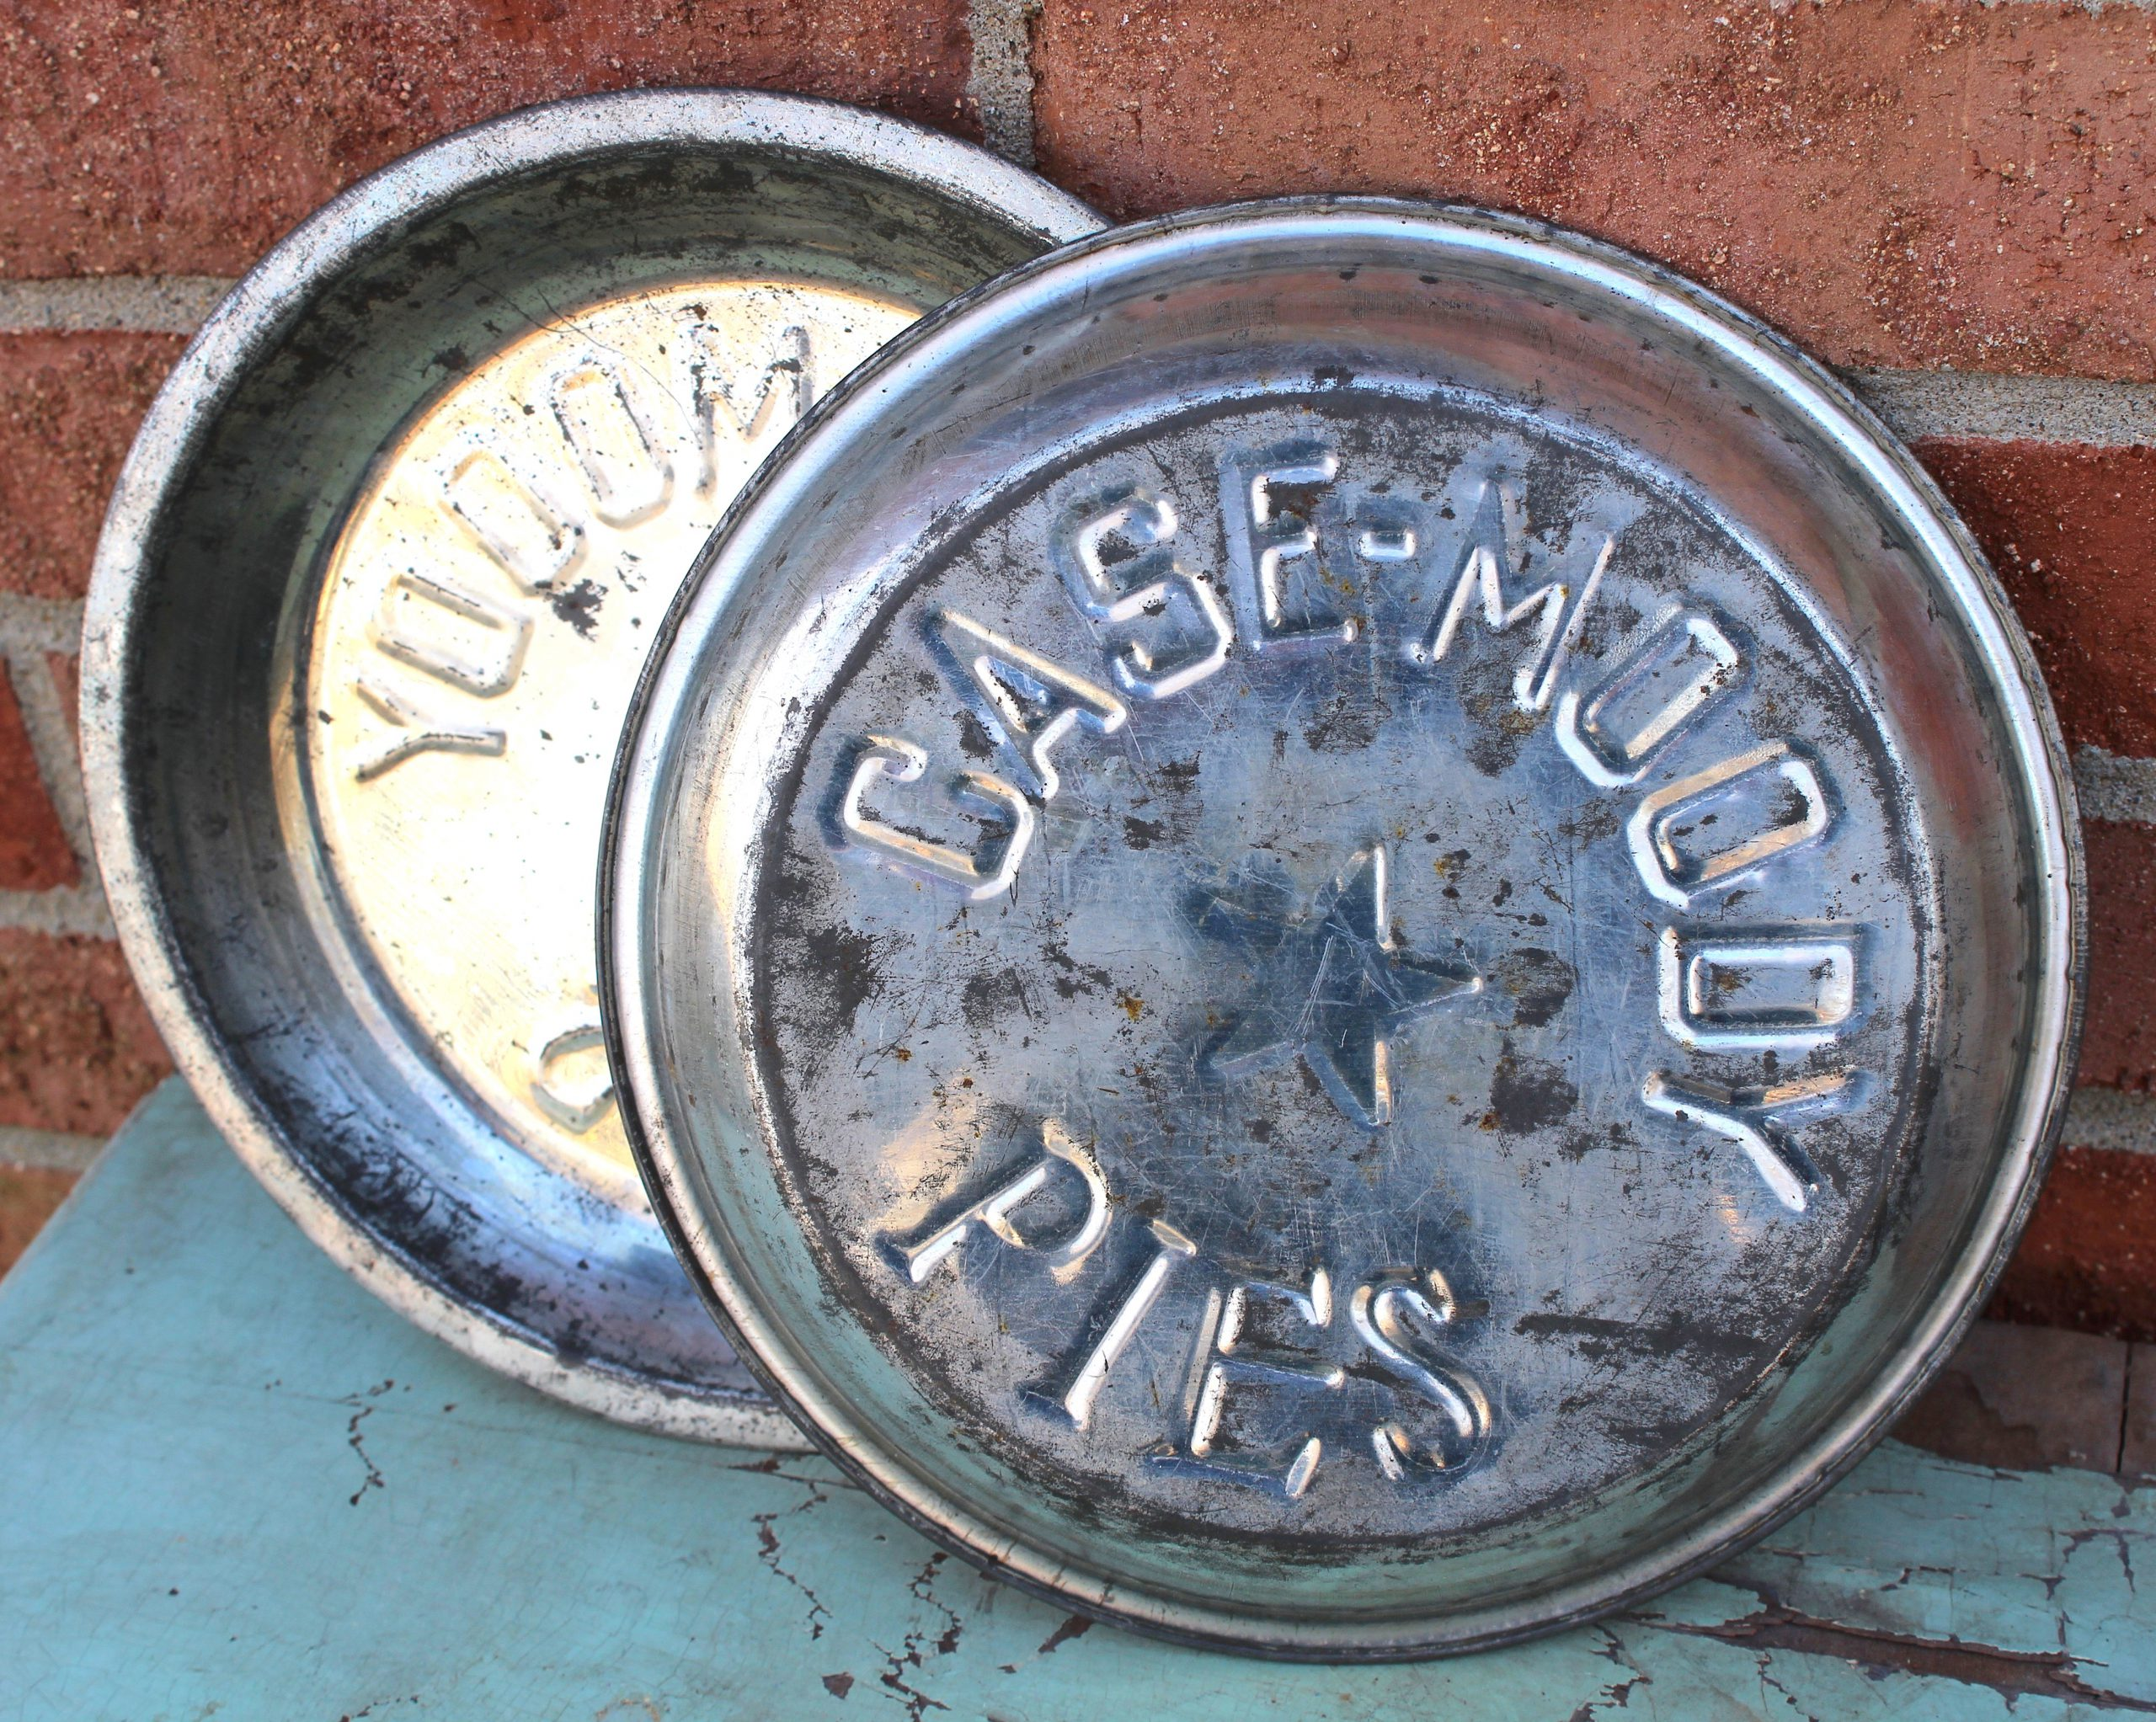 Case-Moody Pies Tins